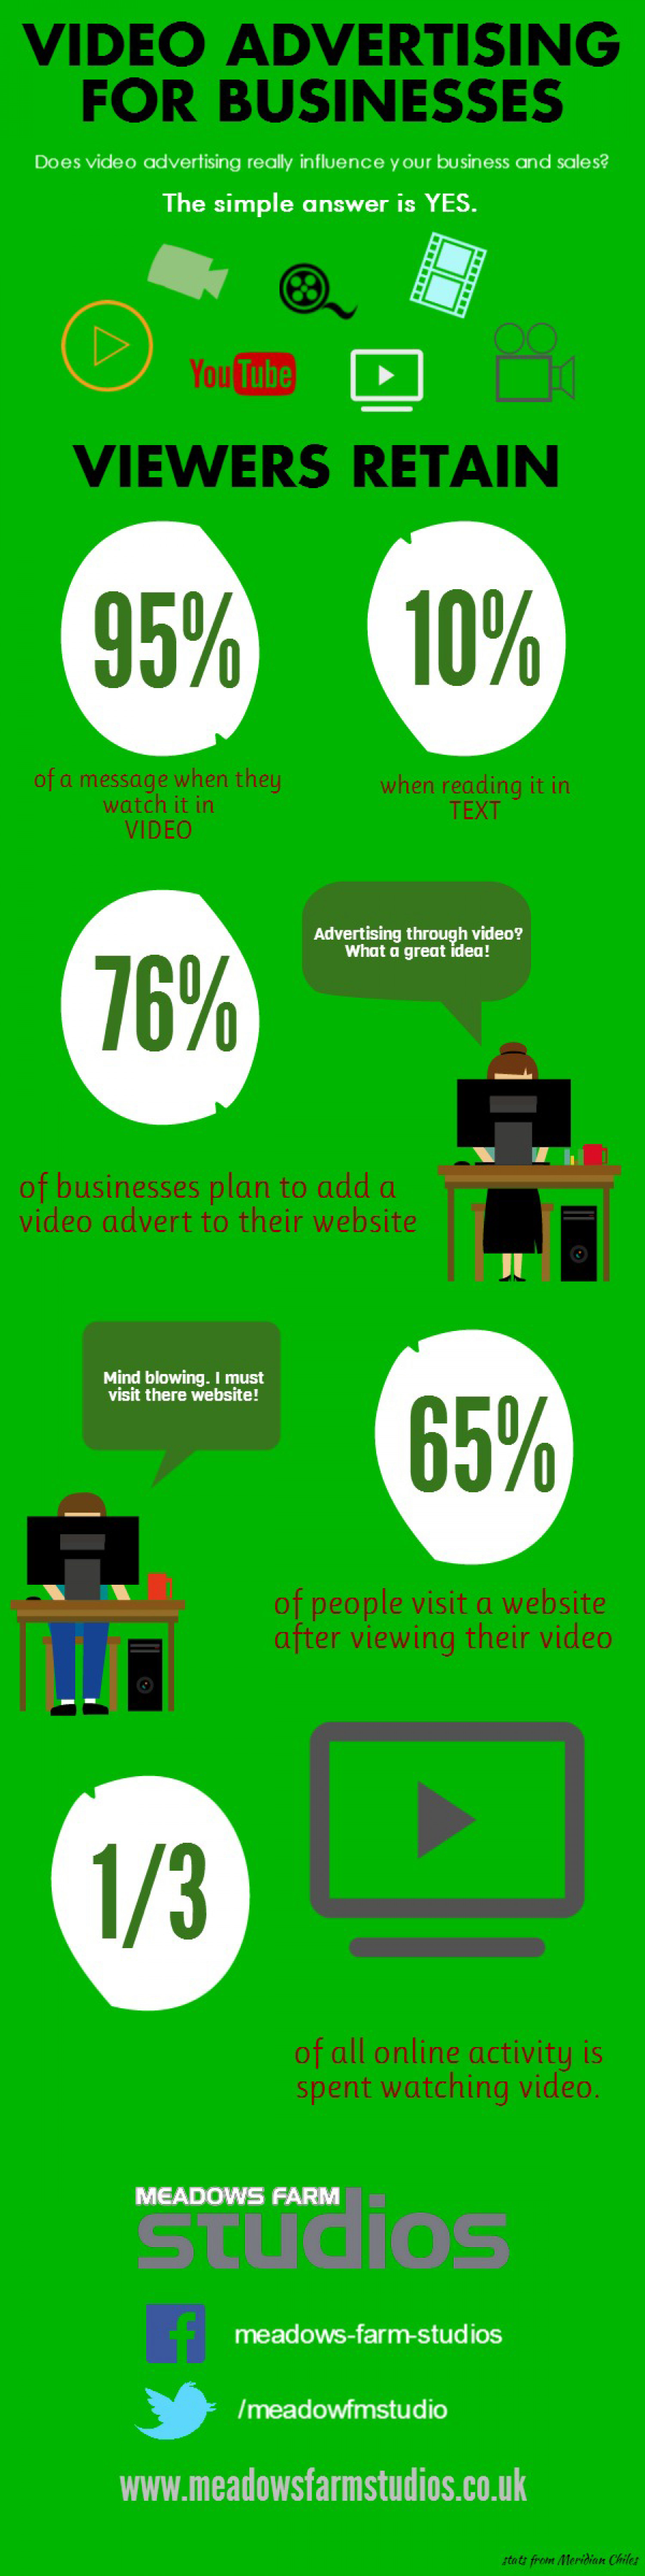 Video Advertising For Businesses Infographic